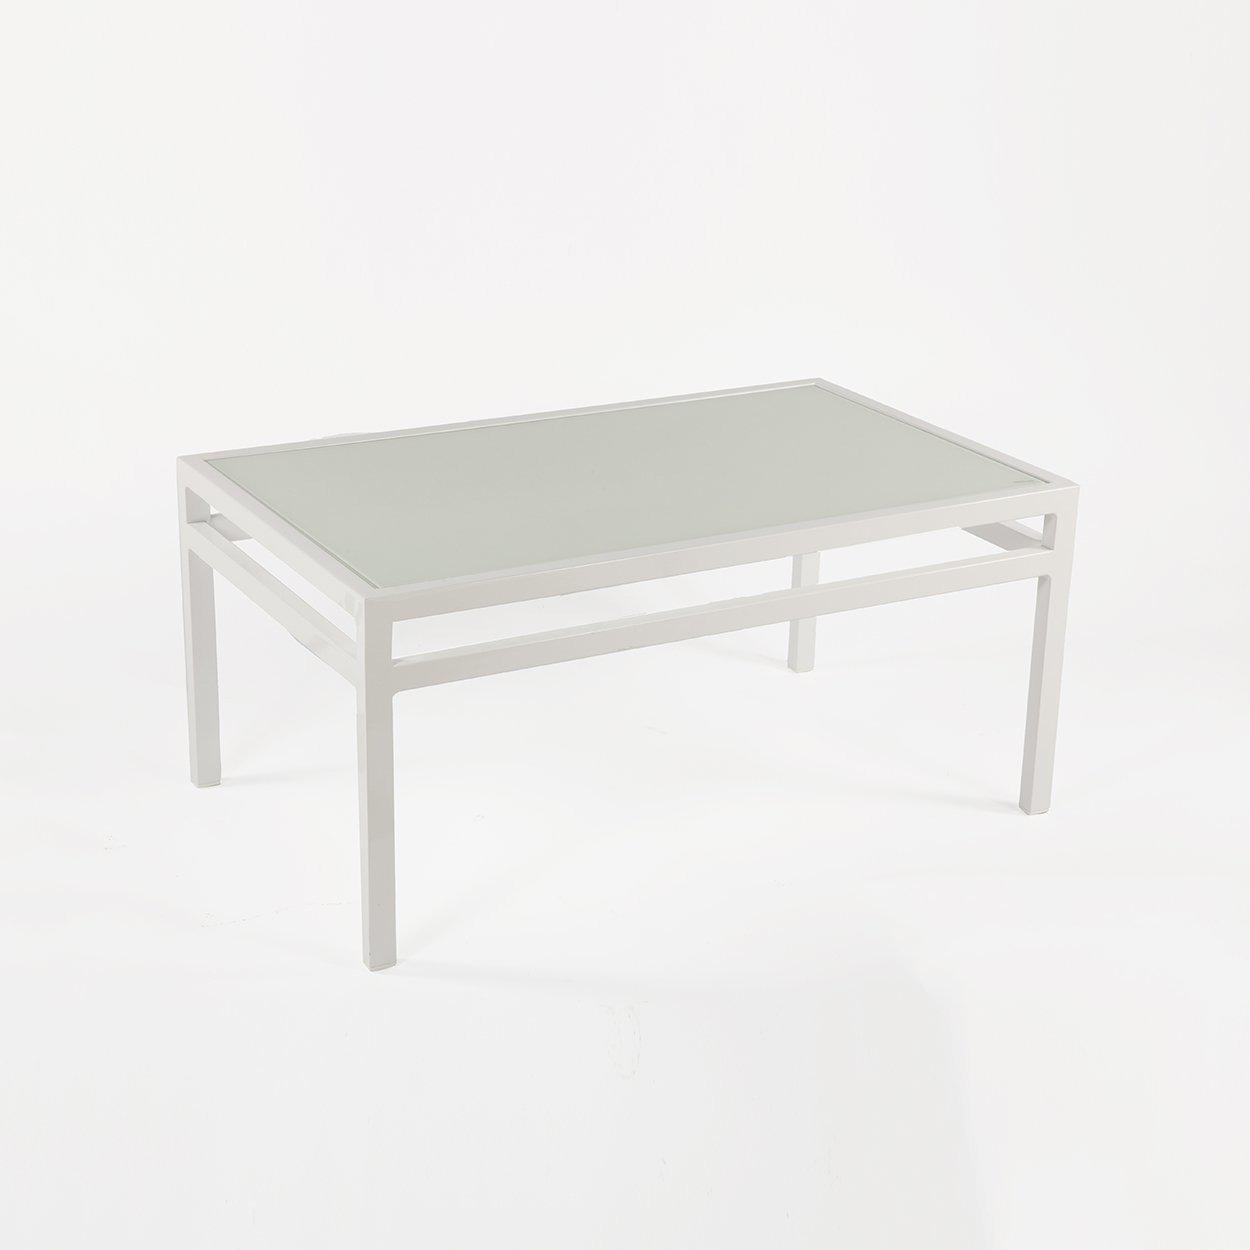 [FCT0223WHT] Meppel coffee table with glass top Sale